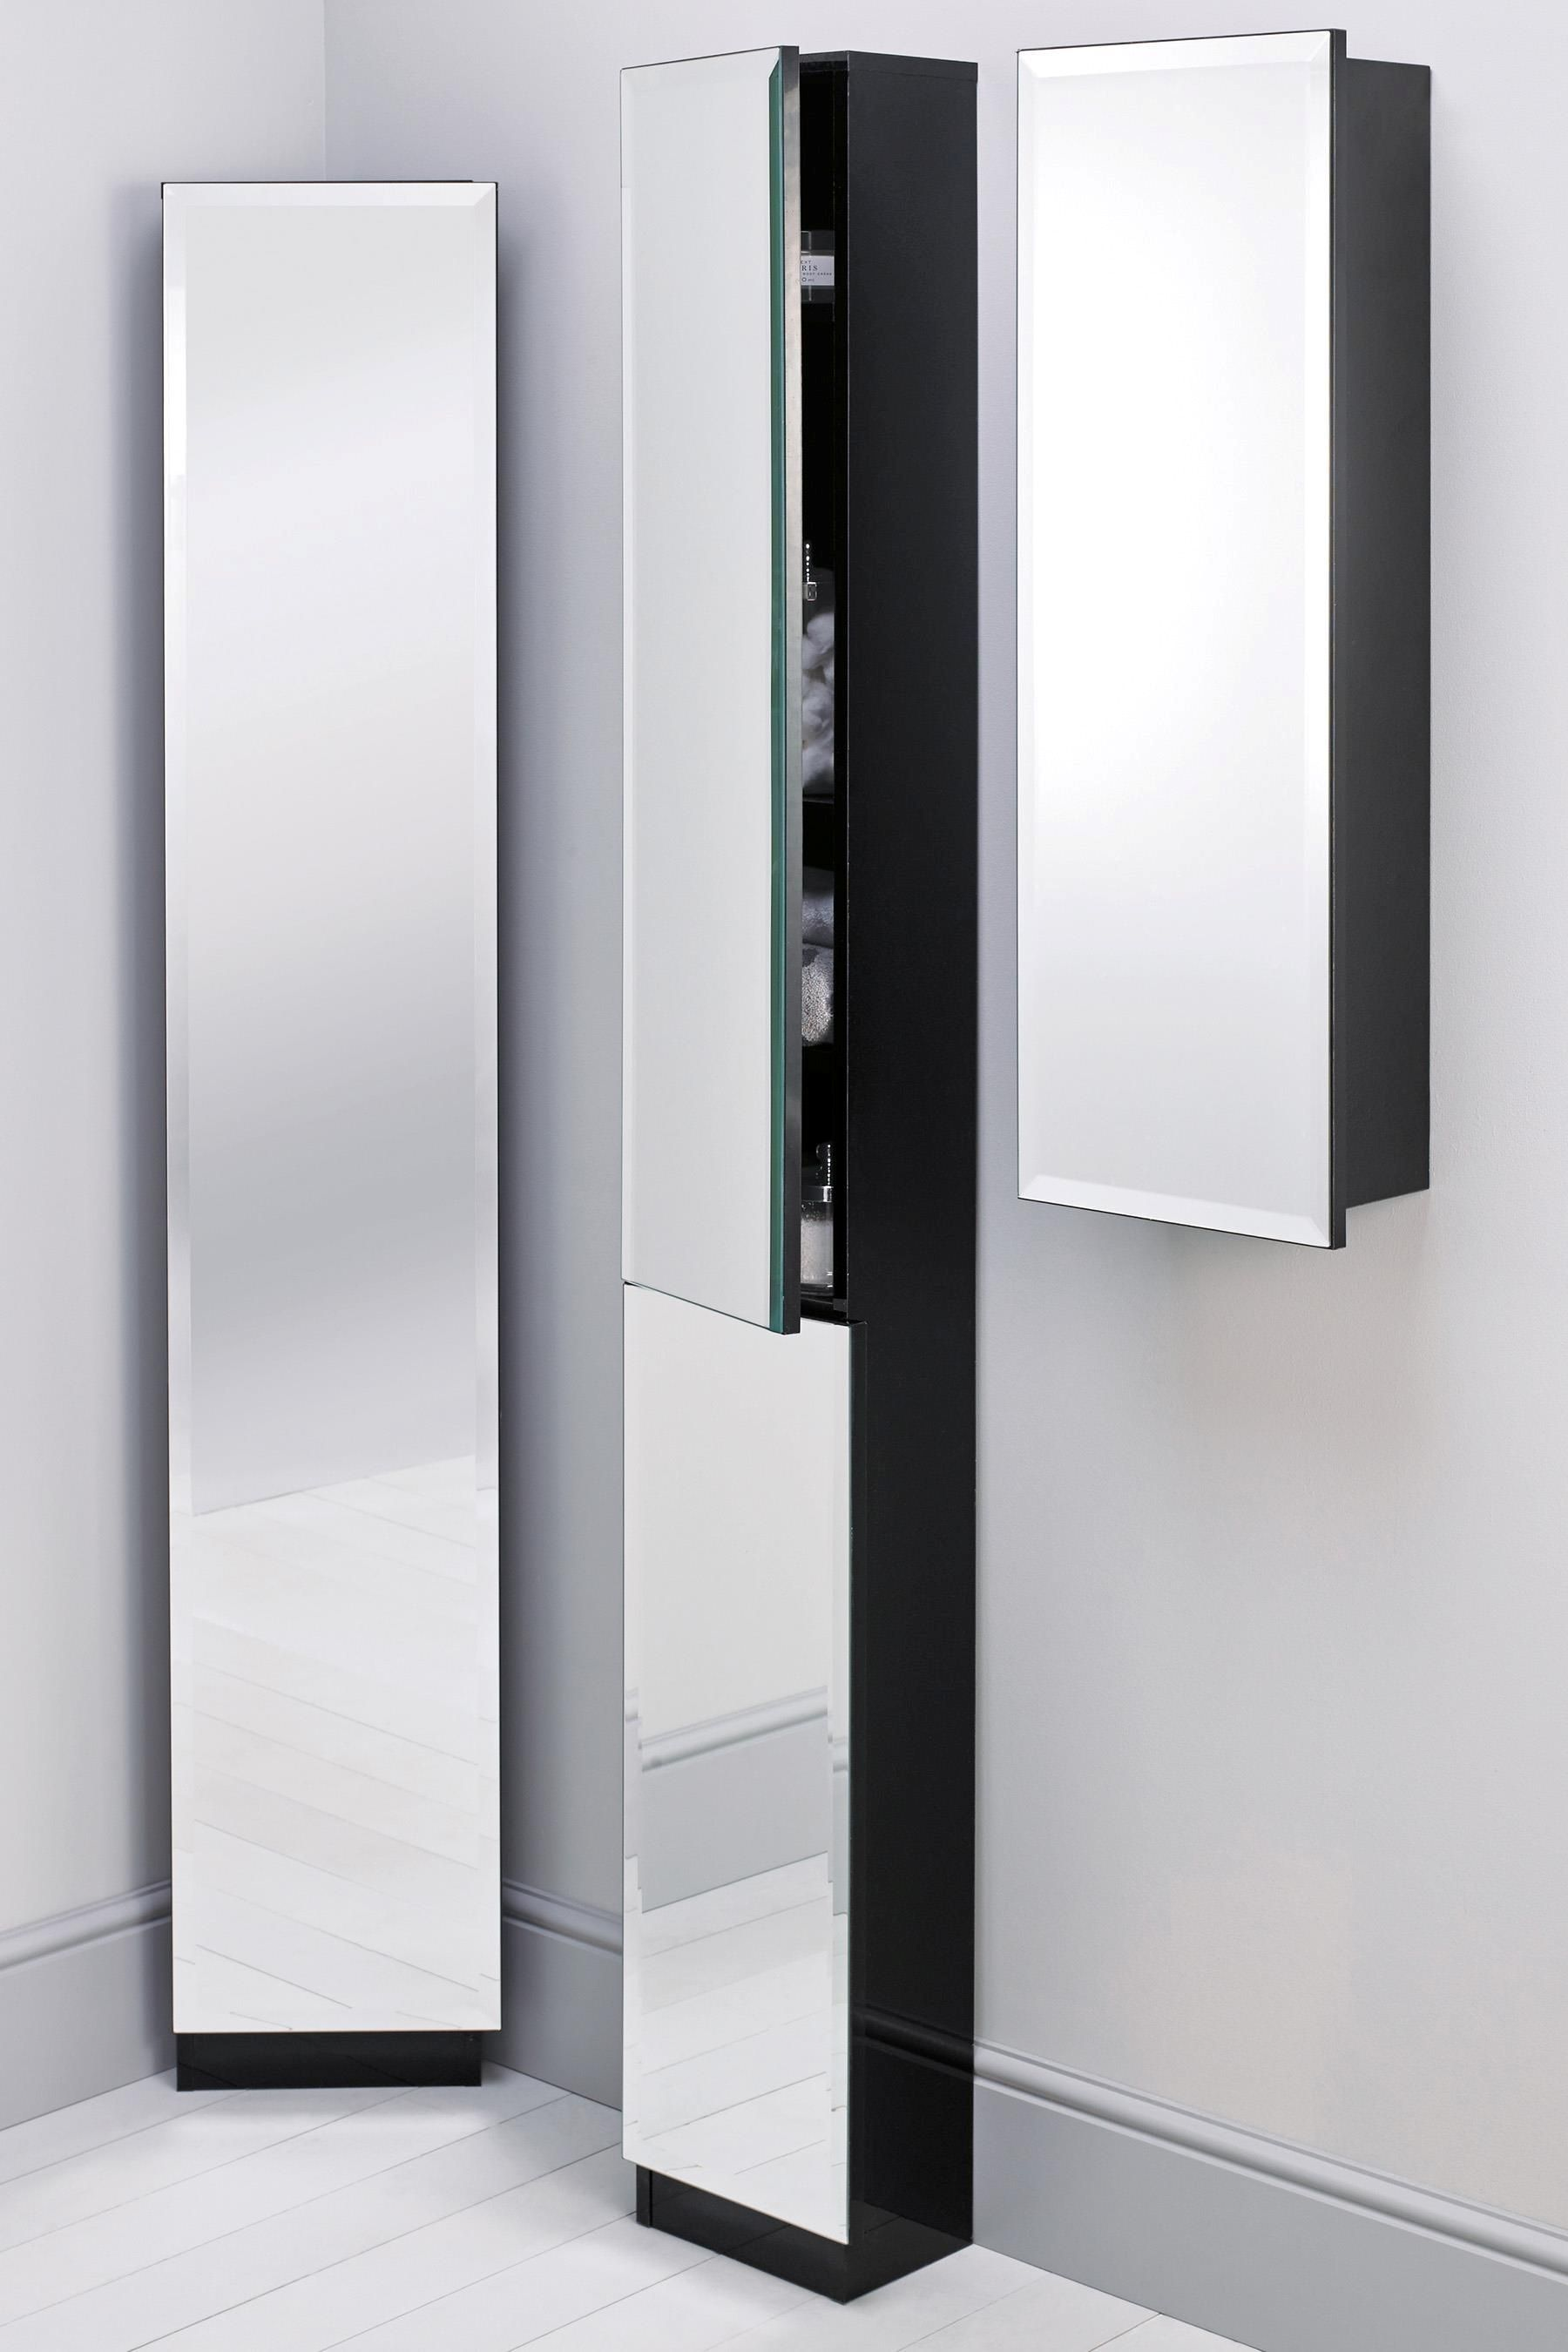 Tall Mirrored Corner Bathroom Cabinets | http://drrw.us | Pinterest ... for Slimline Bathroom Cabinets With Mirrors  51ane